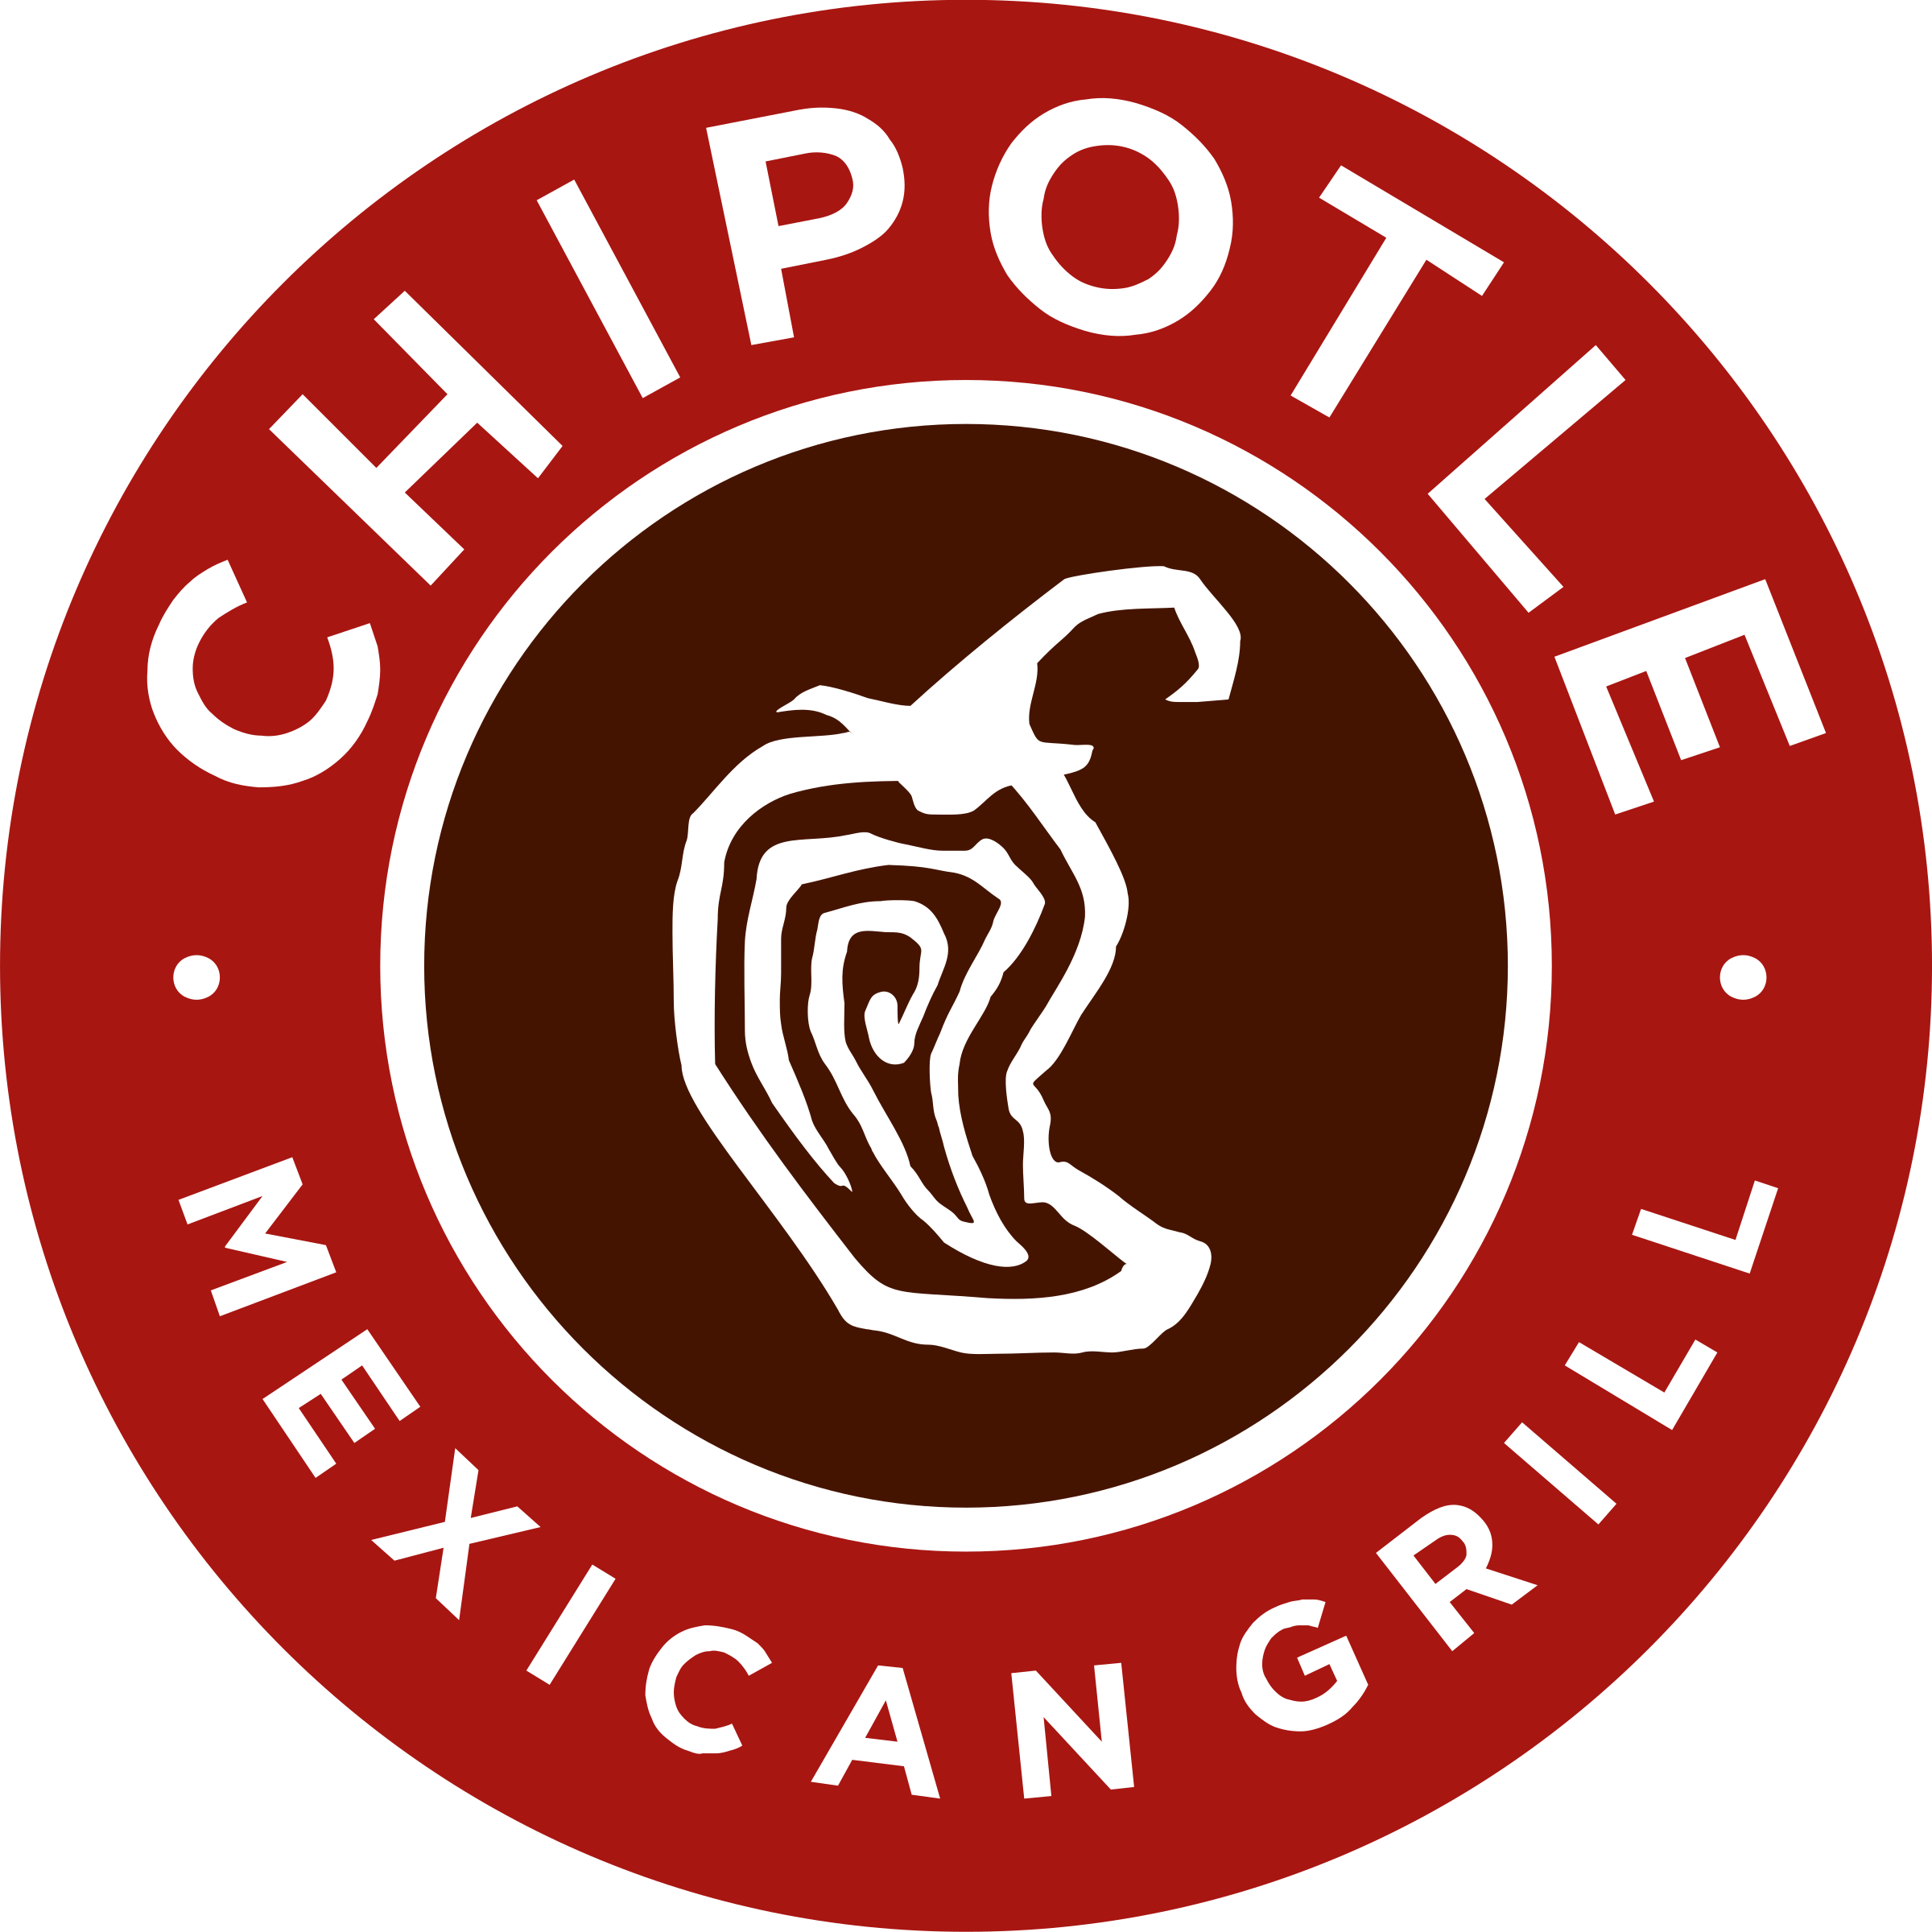 clipart royalty free download Grill svg vector. Chipotle mexican logo png